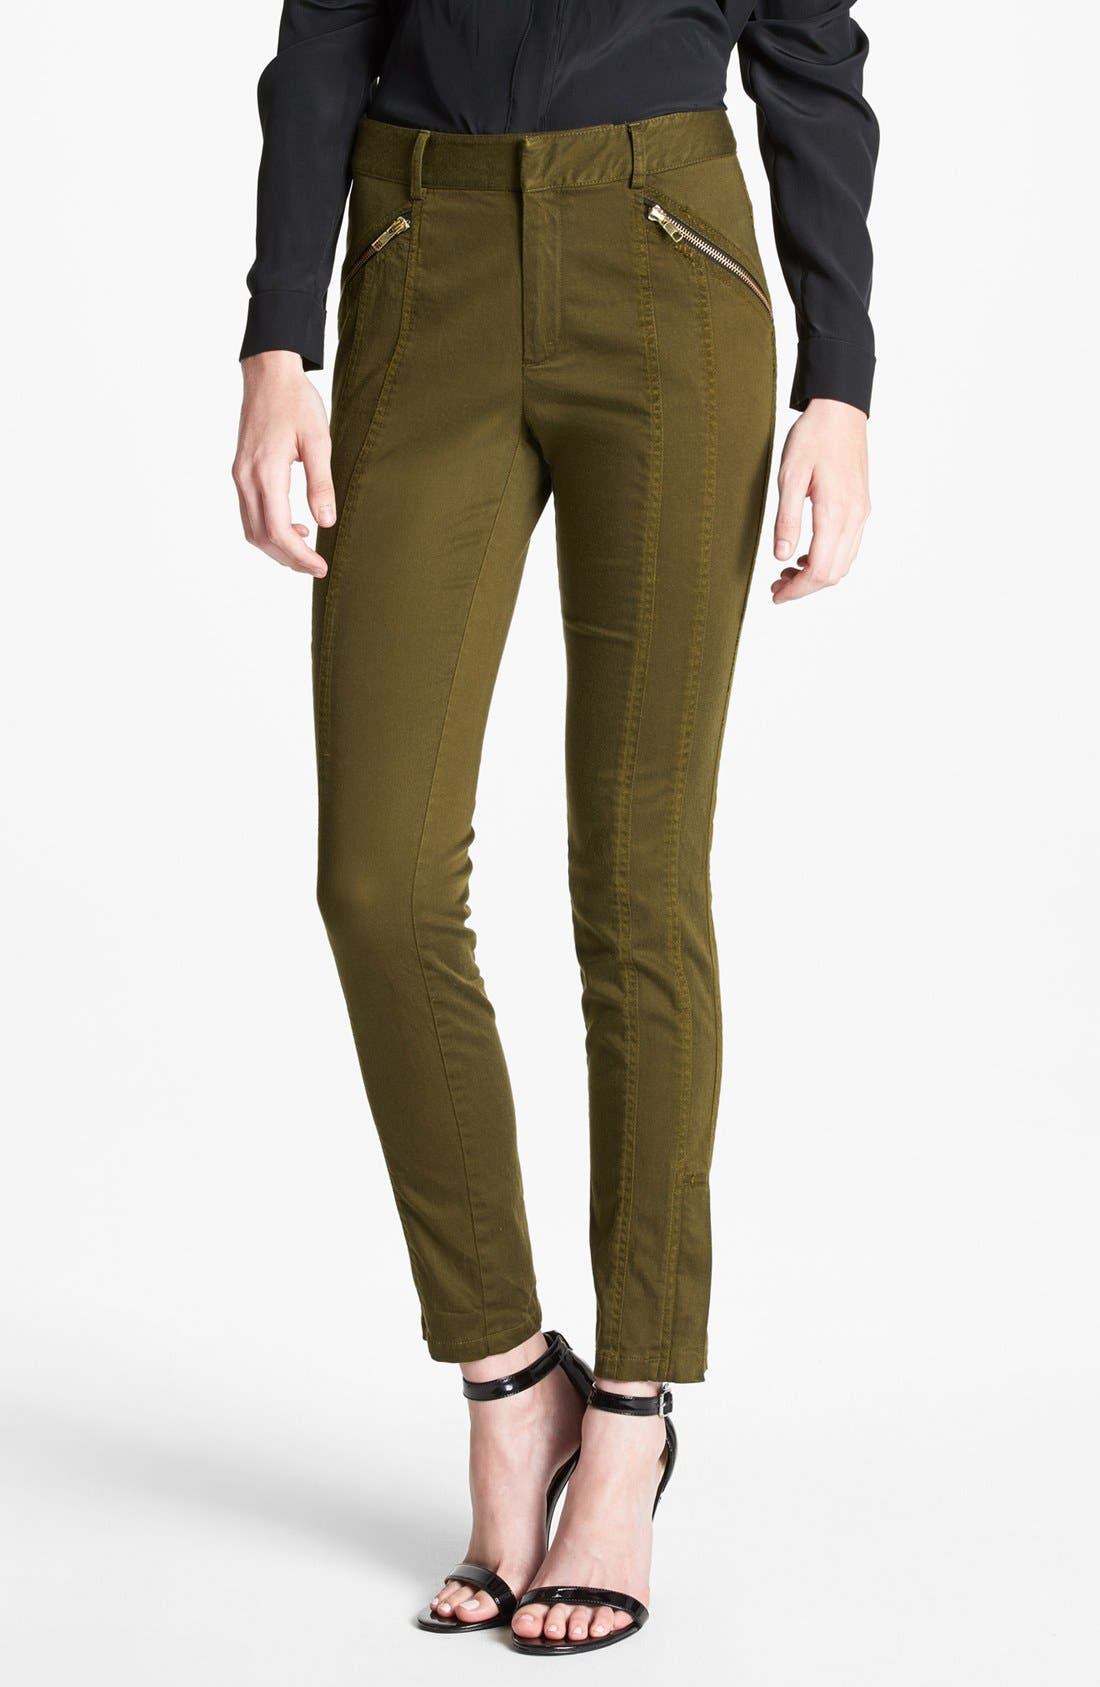 Alternate Image 1 Selected - Nanette Lepore 'Orbit' Seamed Skinny Pants